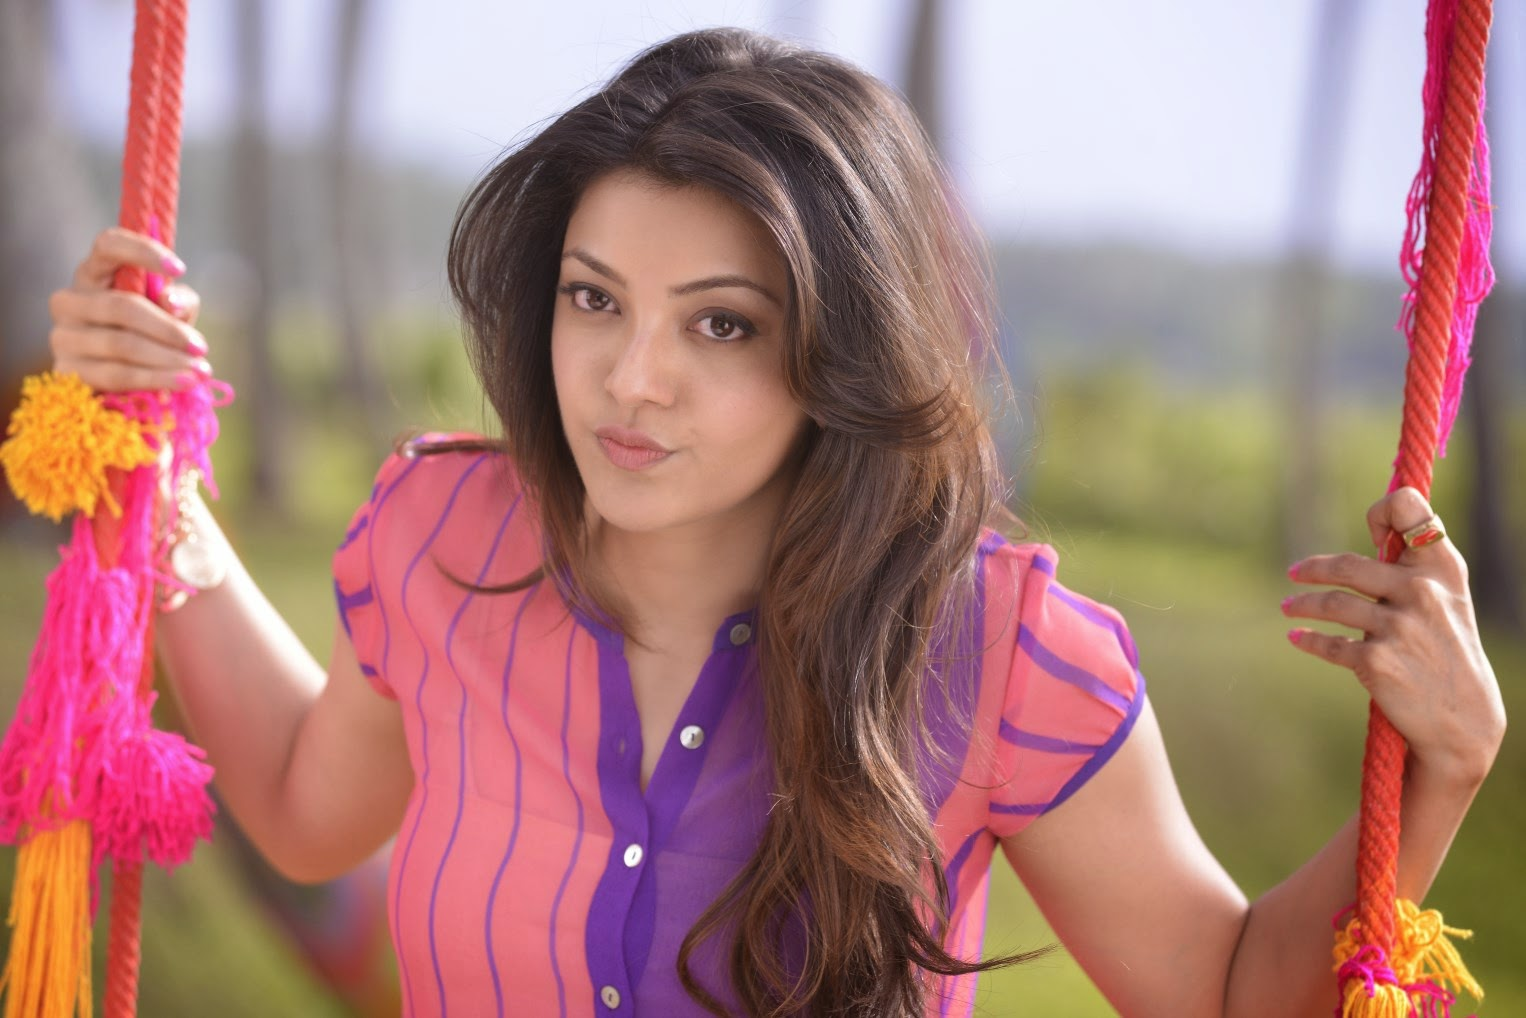 Picture kajal agarwal hot stills from jilla tamil movie 1526x1018 altavistaventures Choice Image